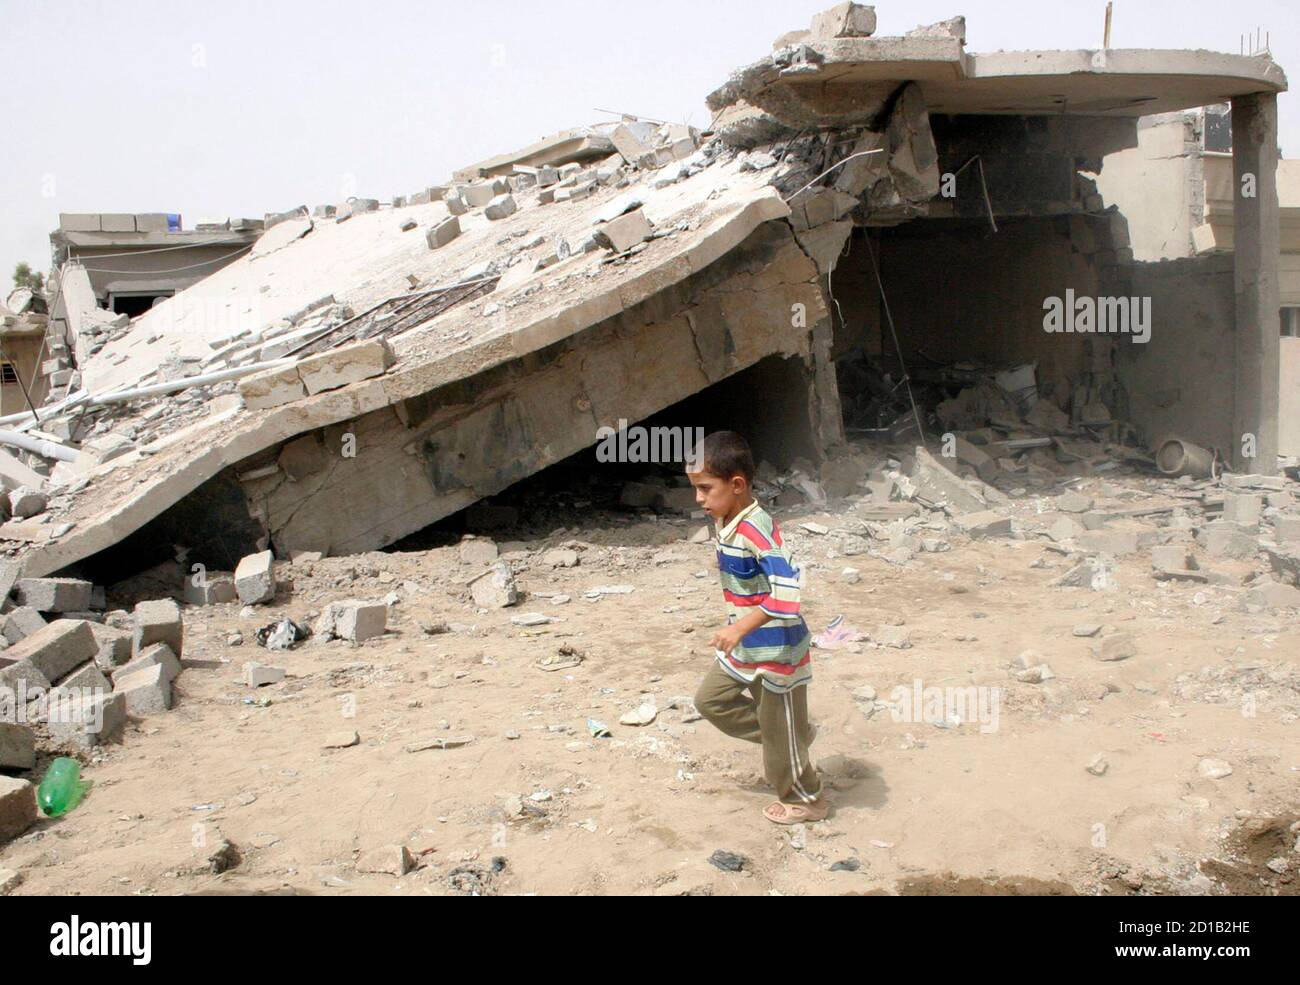 A boy runs past a damaged house after a bomb attack in Mosul, 390 km (242 miles) north of Baghdad July 9, 2009. Two car bombs exploded within minutes of each other on Wednesday in the northern Iraqi city of Mosul, killing 14 people and wounding 33, police said. REUTERS/Khalid al-Mousuly (IRAQ CONFLICT) Stock Photo